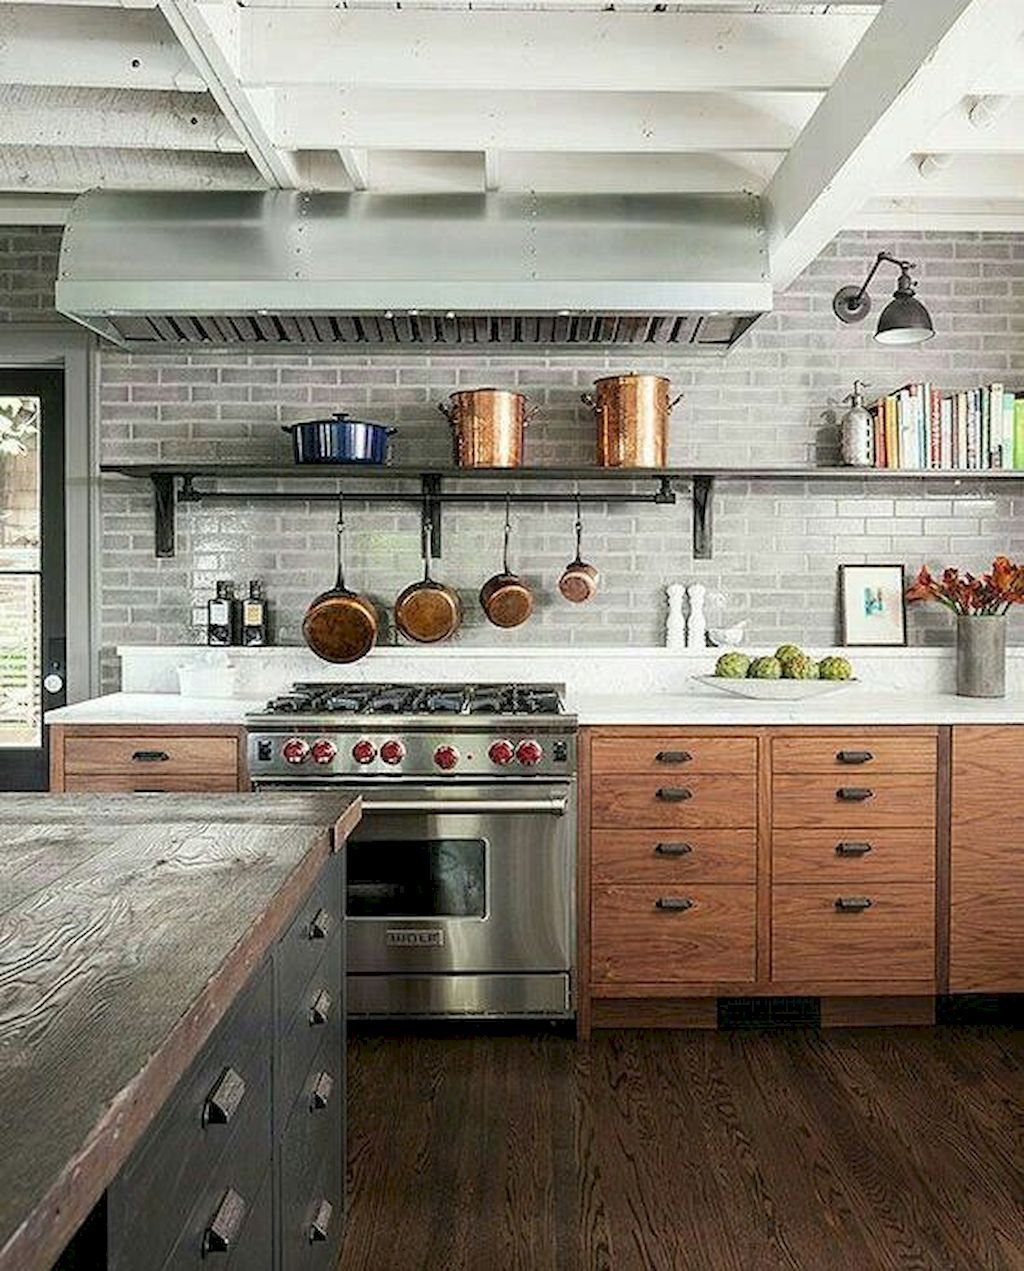 Awesome 60 Awesome Modern Kitchens Ideas Remodeling On A Budget Https Livingmarch Com 60 A Rustic Modern Kitchen Industrial Kitchen Design Home Decor Kitchen